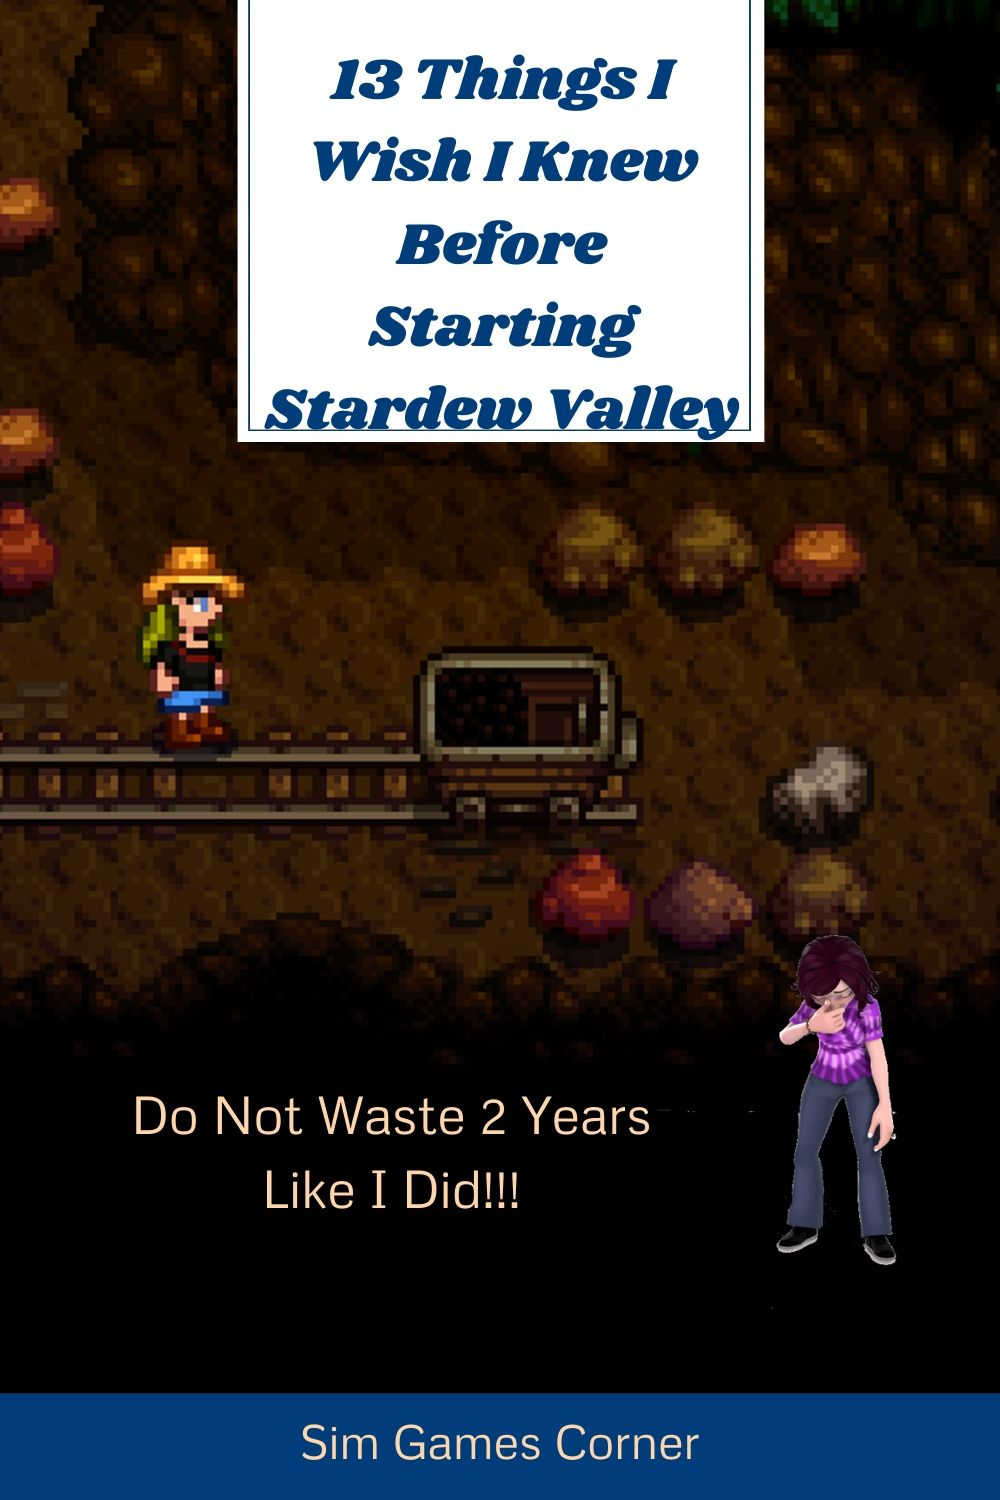 13 Things I Wish I Knew About Stardew Valley Sim Games Corner I got my dinosaur eggs from fishing, they were bonus treasures. 13 things i wish i knew about stardew